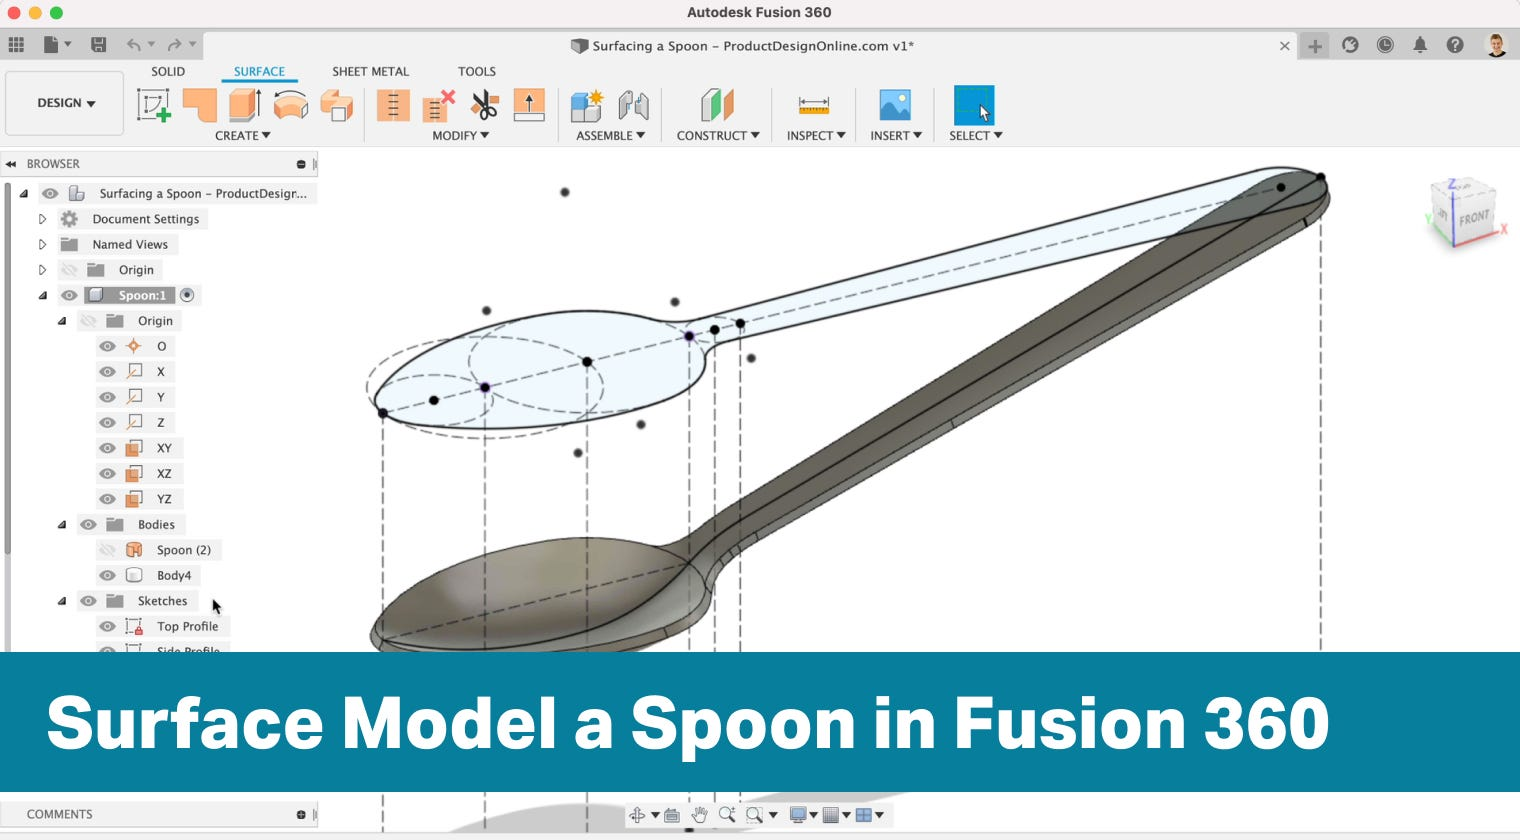 How to surface model in Fusion 360